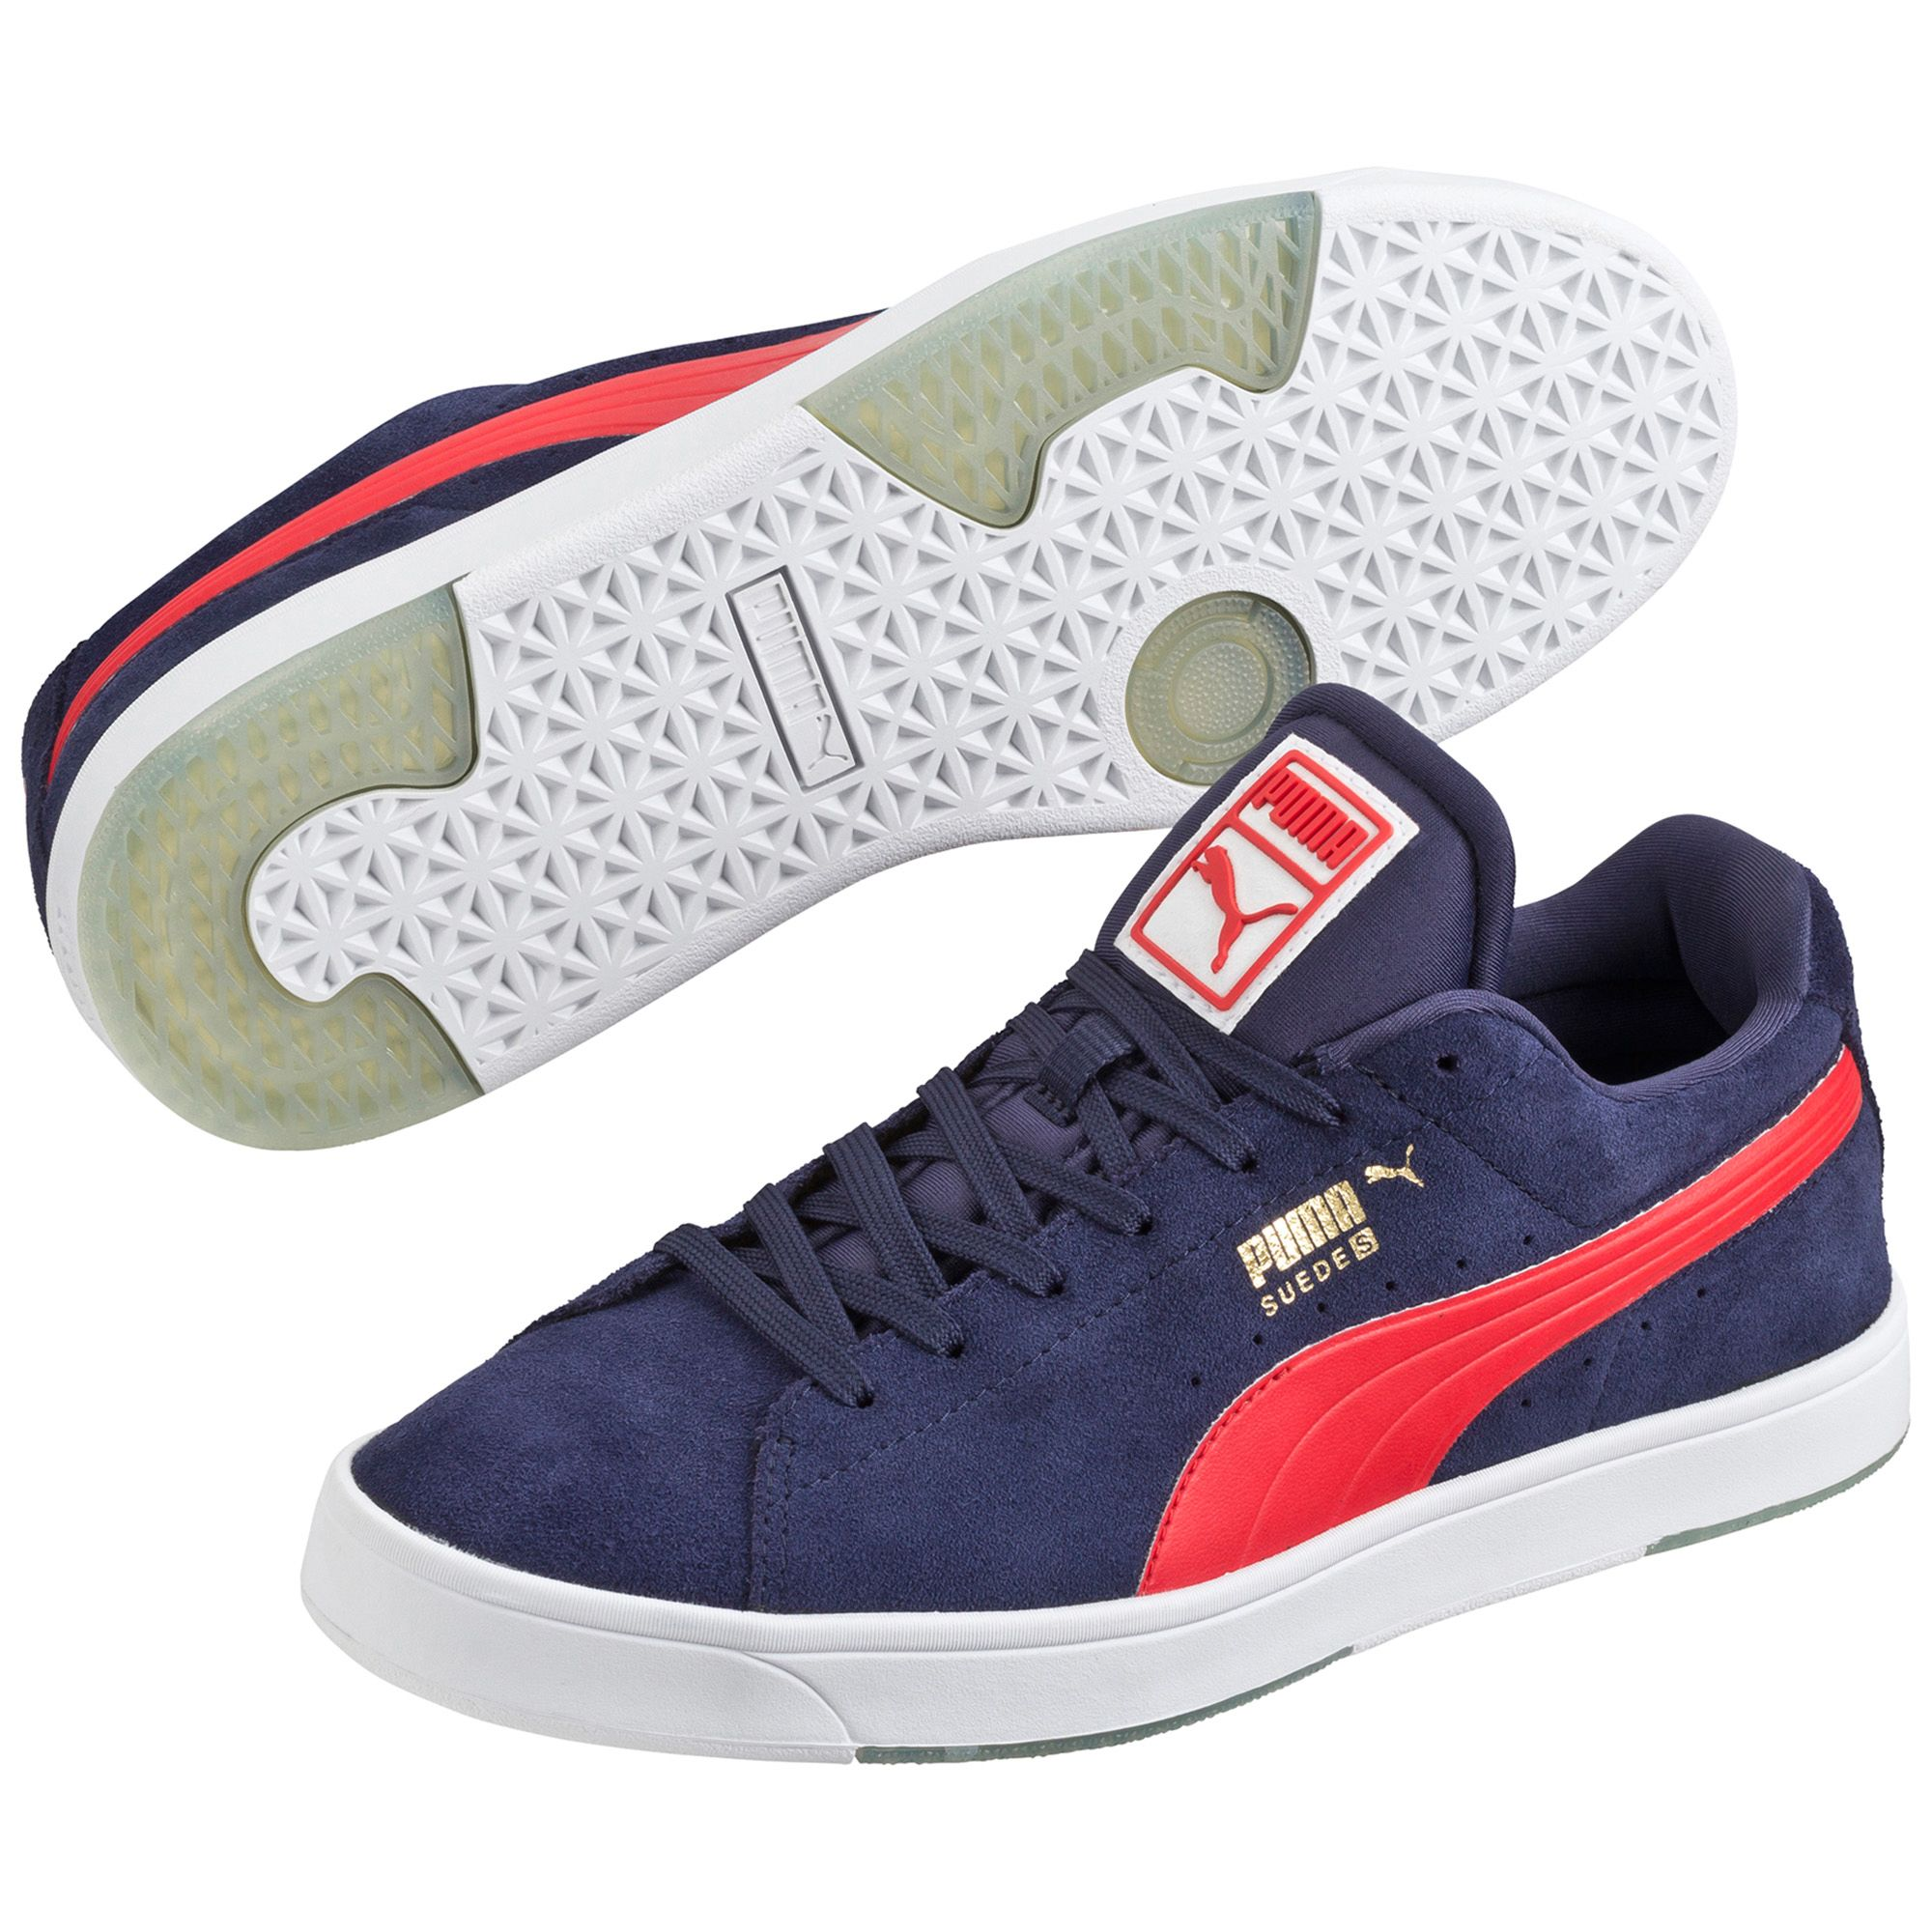 puma suede s sneaker schuhe evolution m nner neu ebay. Black Bedroom Furniture Sets. Home Design Ideas